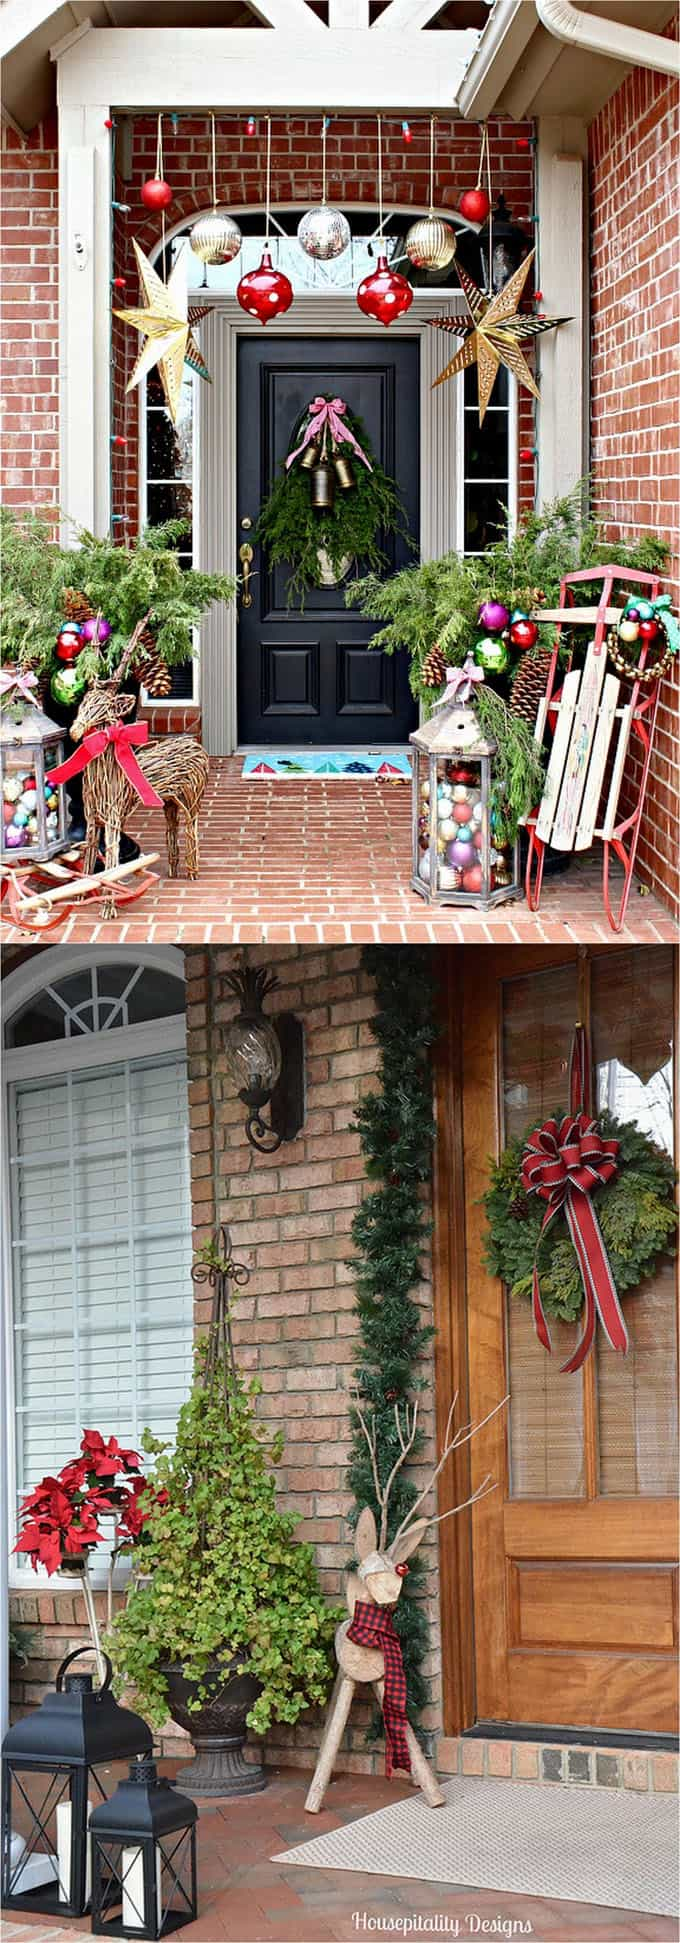 Reindeers, Sleighs, And Jingle Bells Make Lovely Outdoor Christmas  Decorations Too! ( Via Dimples U0026 Tangles | Hospitality Designs ) Continue  To Next Pageu2026